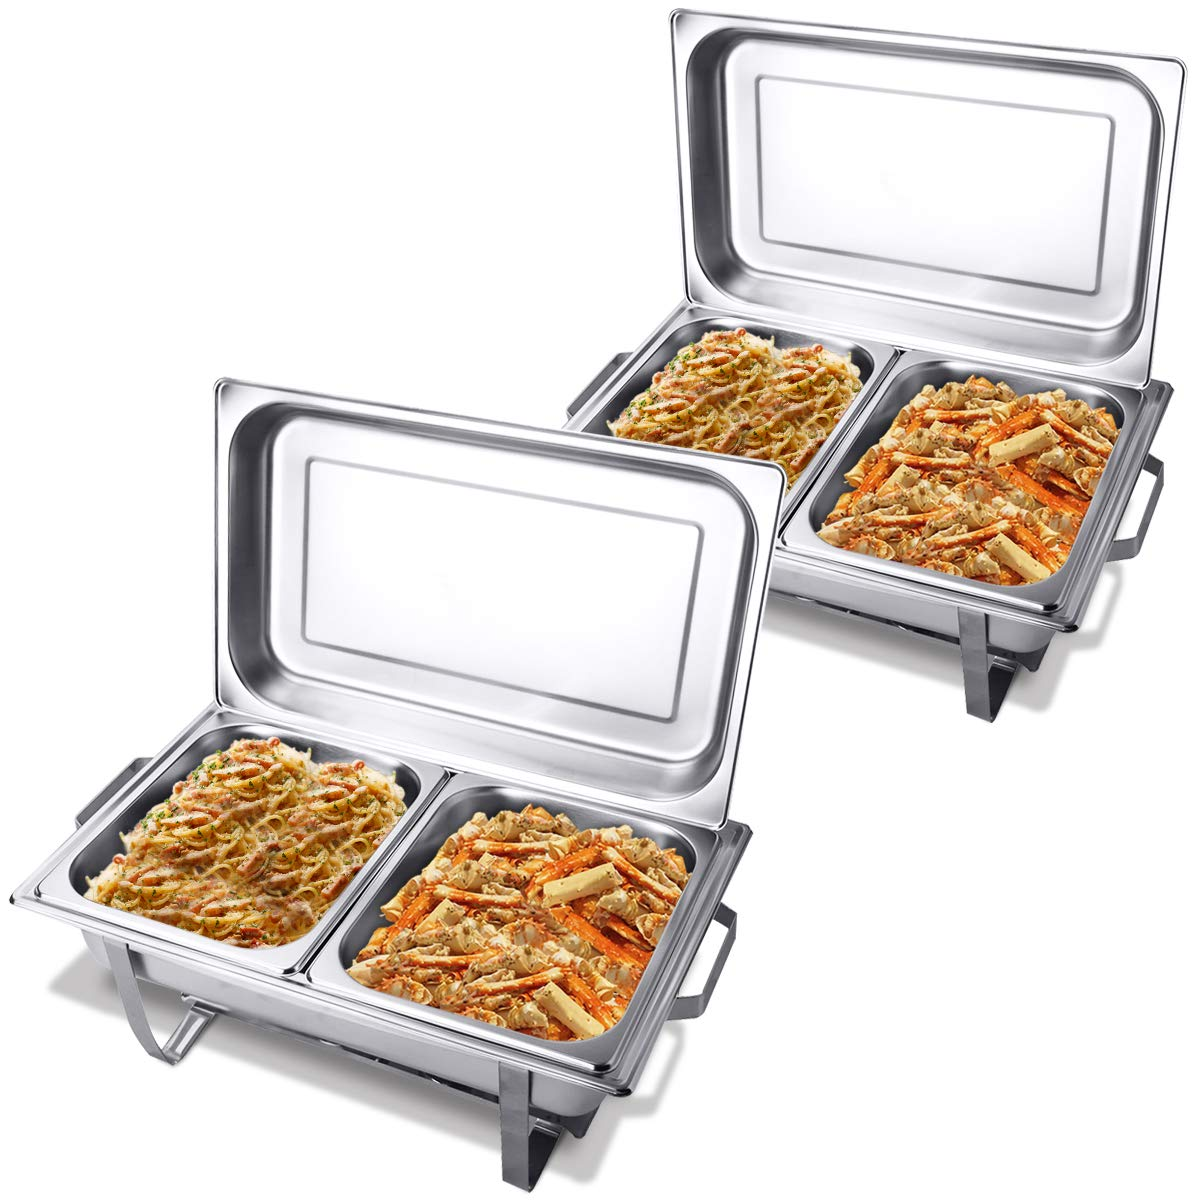 Giantex 2 Packs Chafing Dish 9 Quart Chafer Dishes Buffet Set Stainless Steel Rectangular Chafing Dish Set Full Size (9 Quart w/ 2 Half Size Pan)